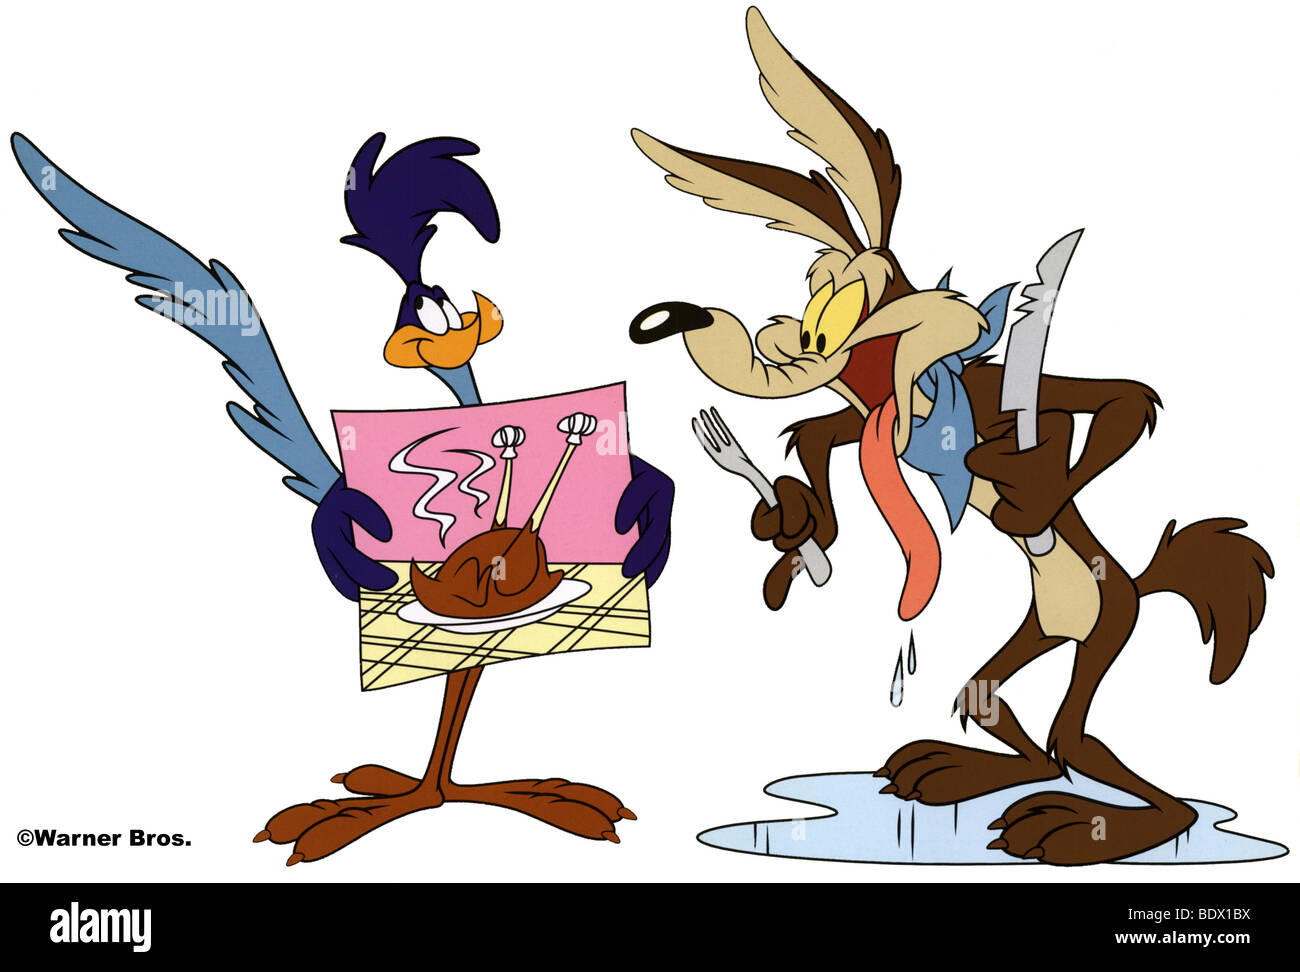 Looney Tunes Stock Photos & Looney Tunes Stock Images - Alamy